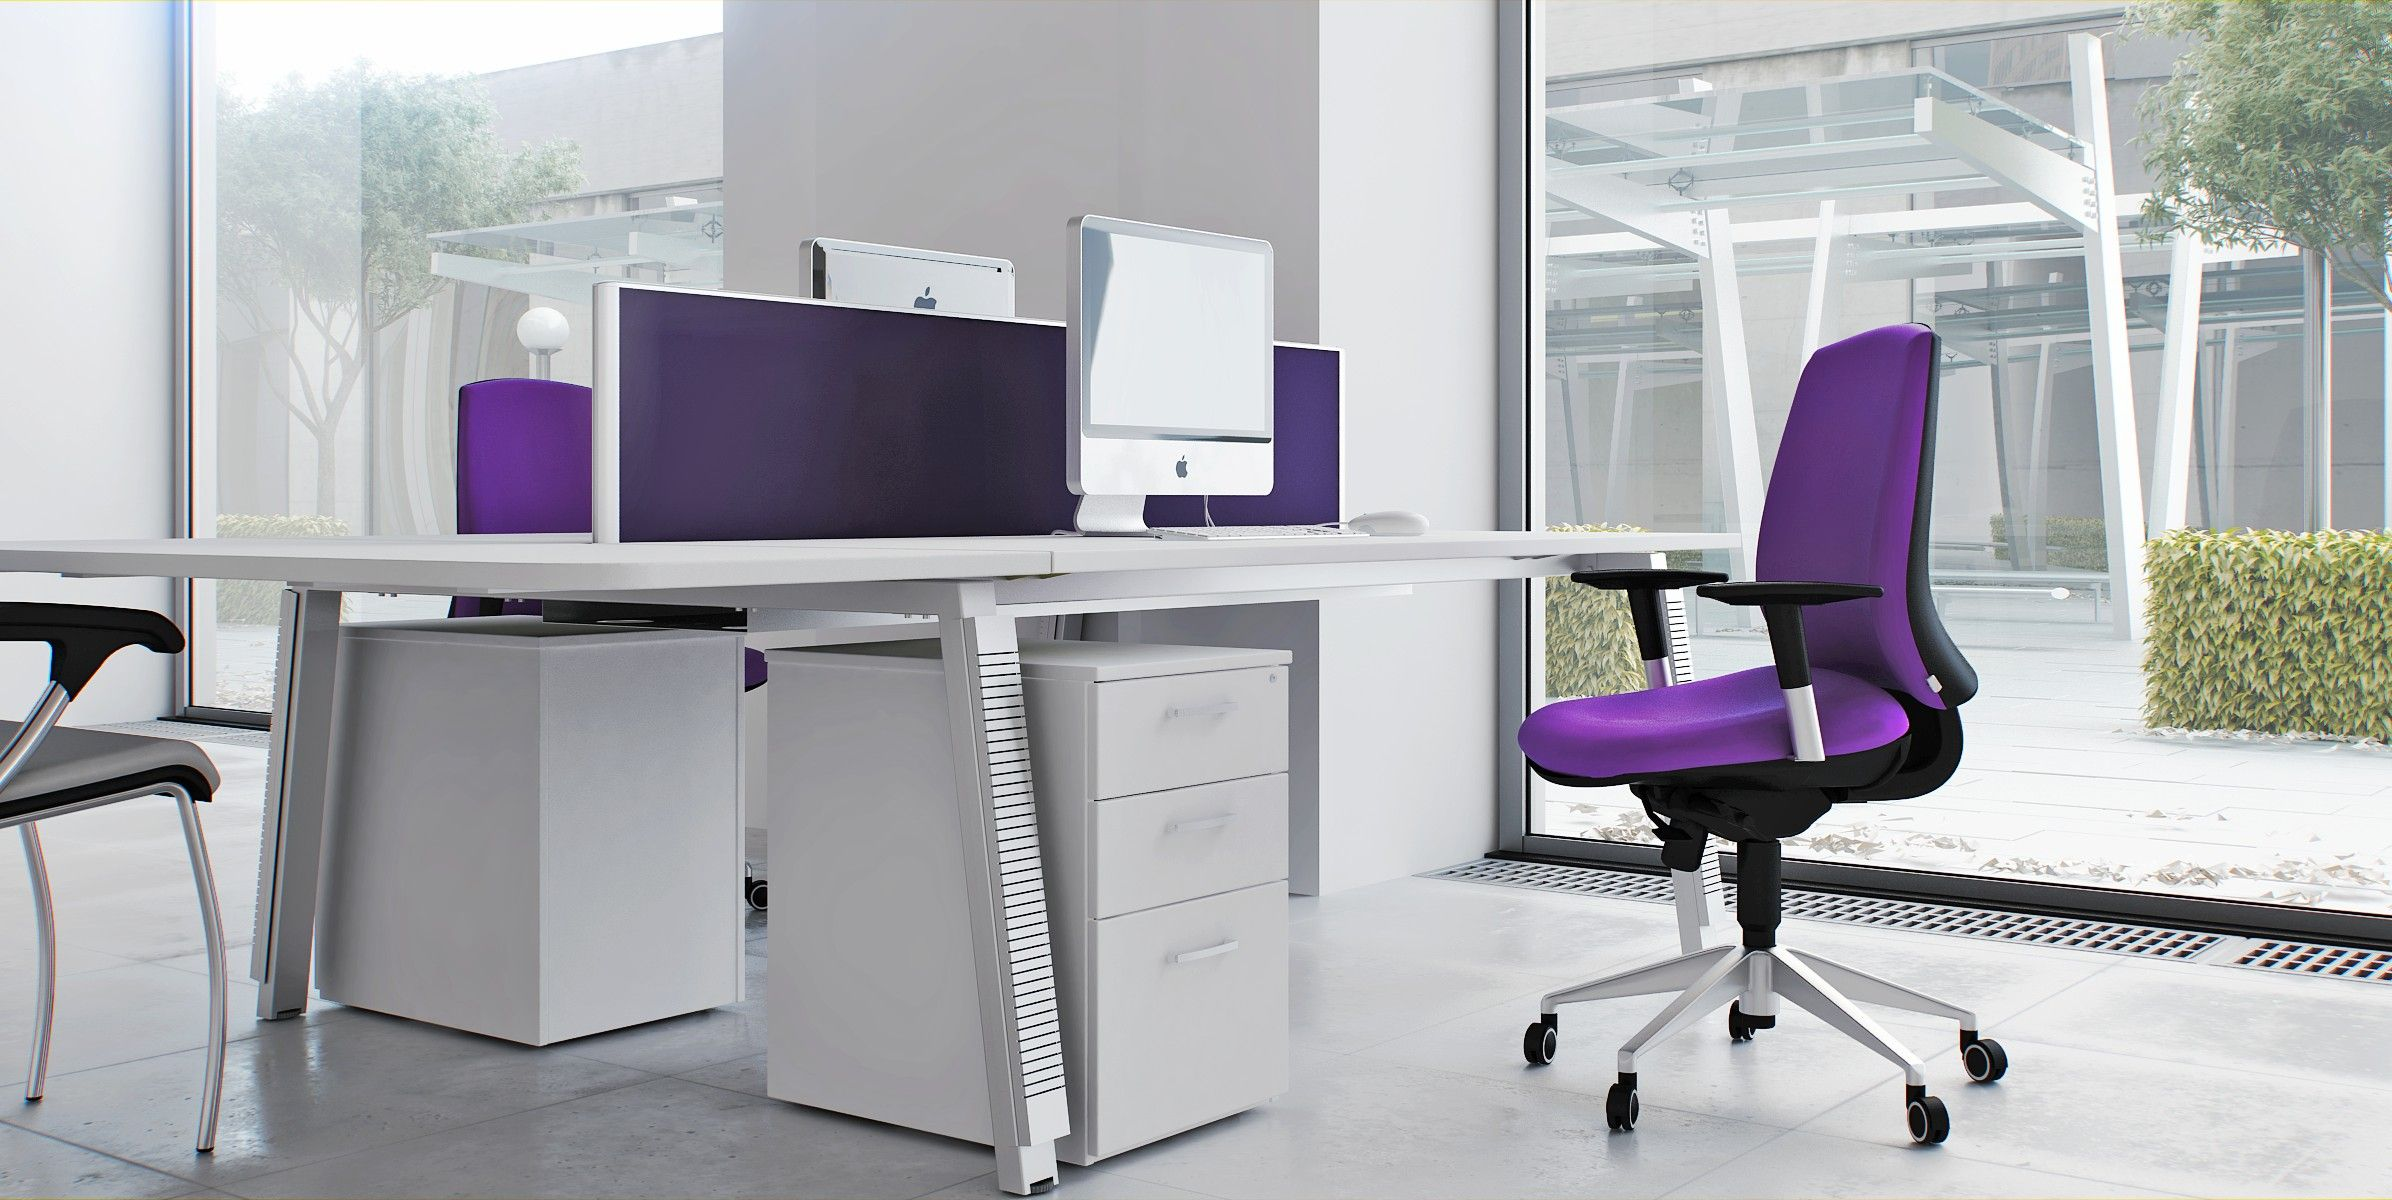 Captivating modern office chair with soft purple fabric for Modern office decor ideas